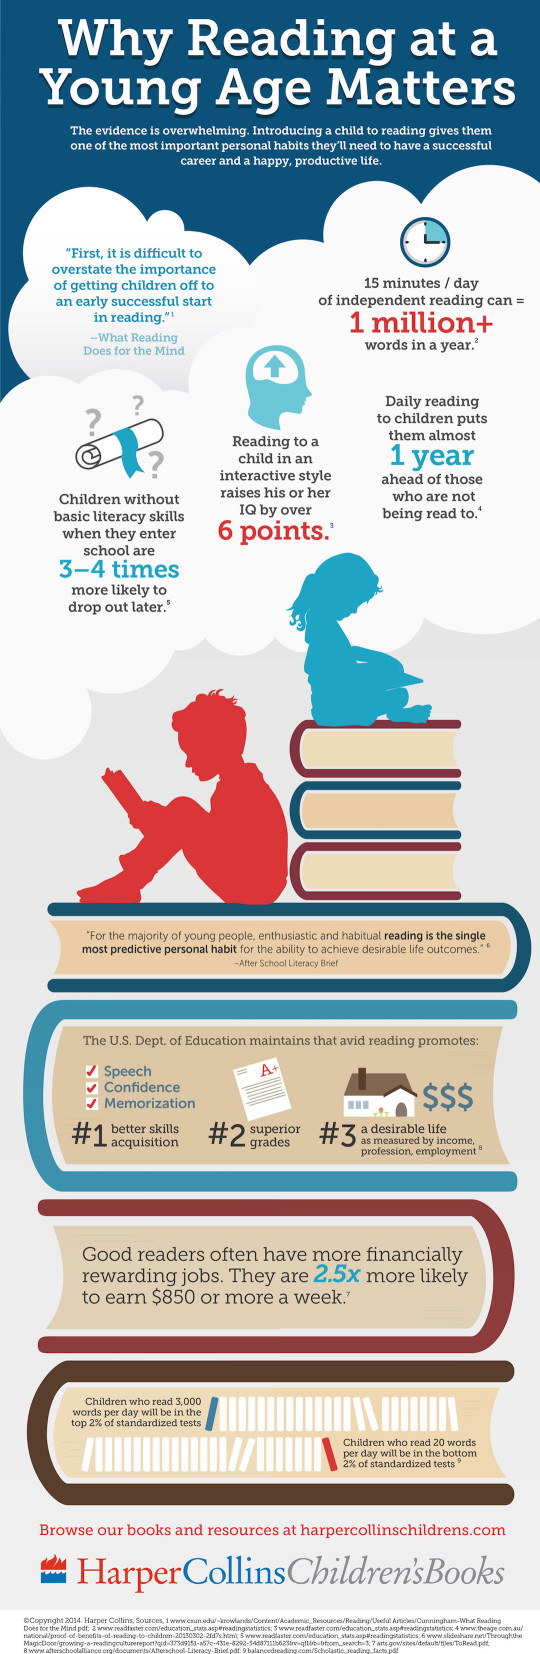 Why-reading-at-young-age-matters-full-infographic-540x1654